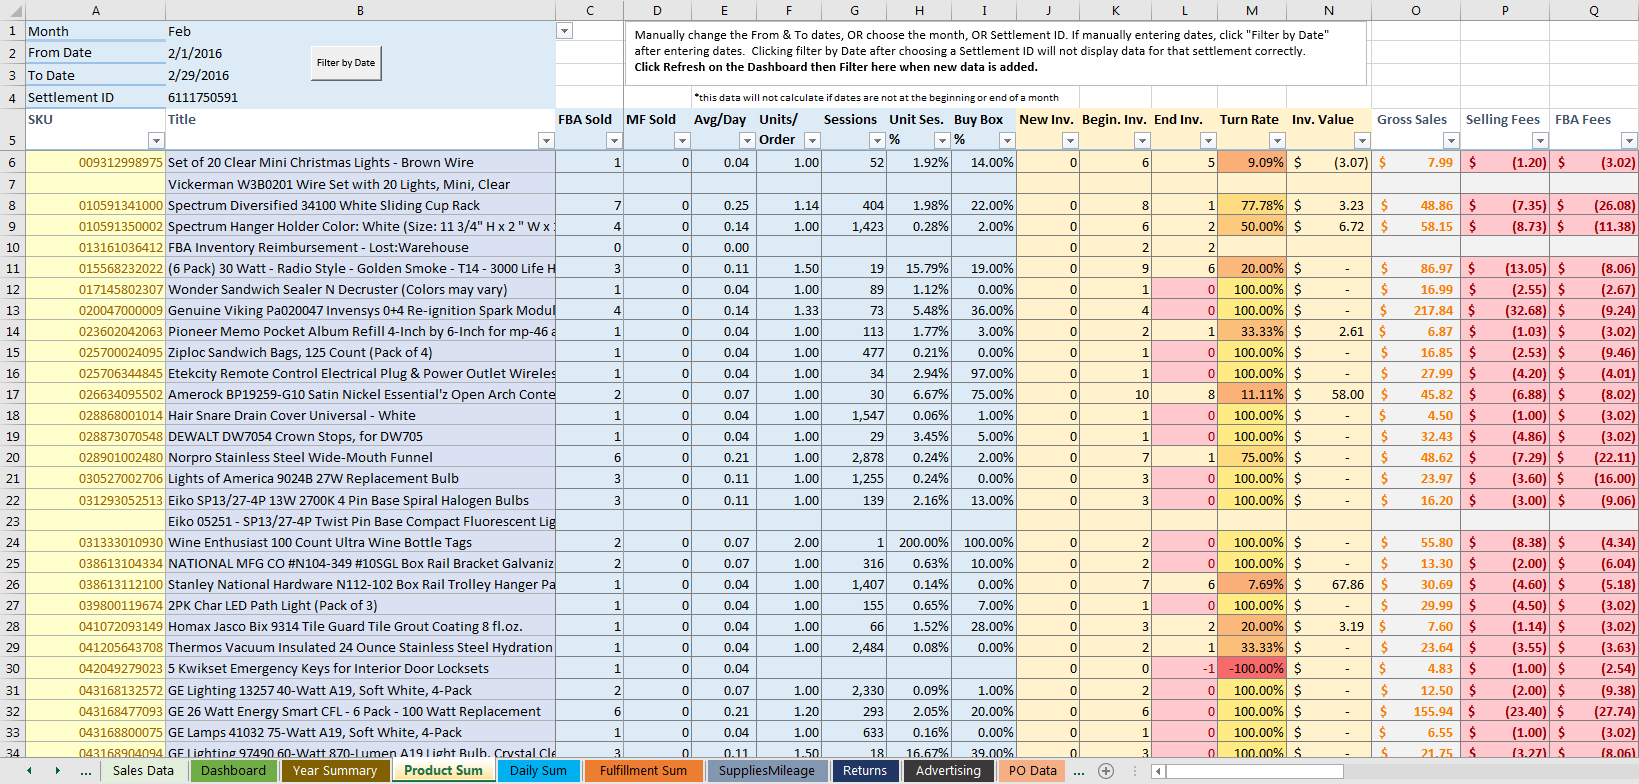 The Ultimate Amazon Fba Sales Spreadsheet V2 Together With Amazon Fba Excel Spreadsheet